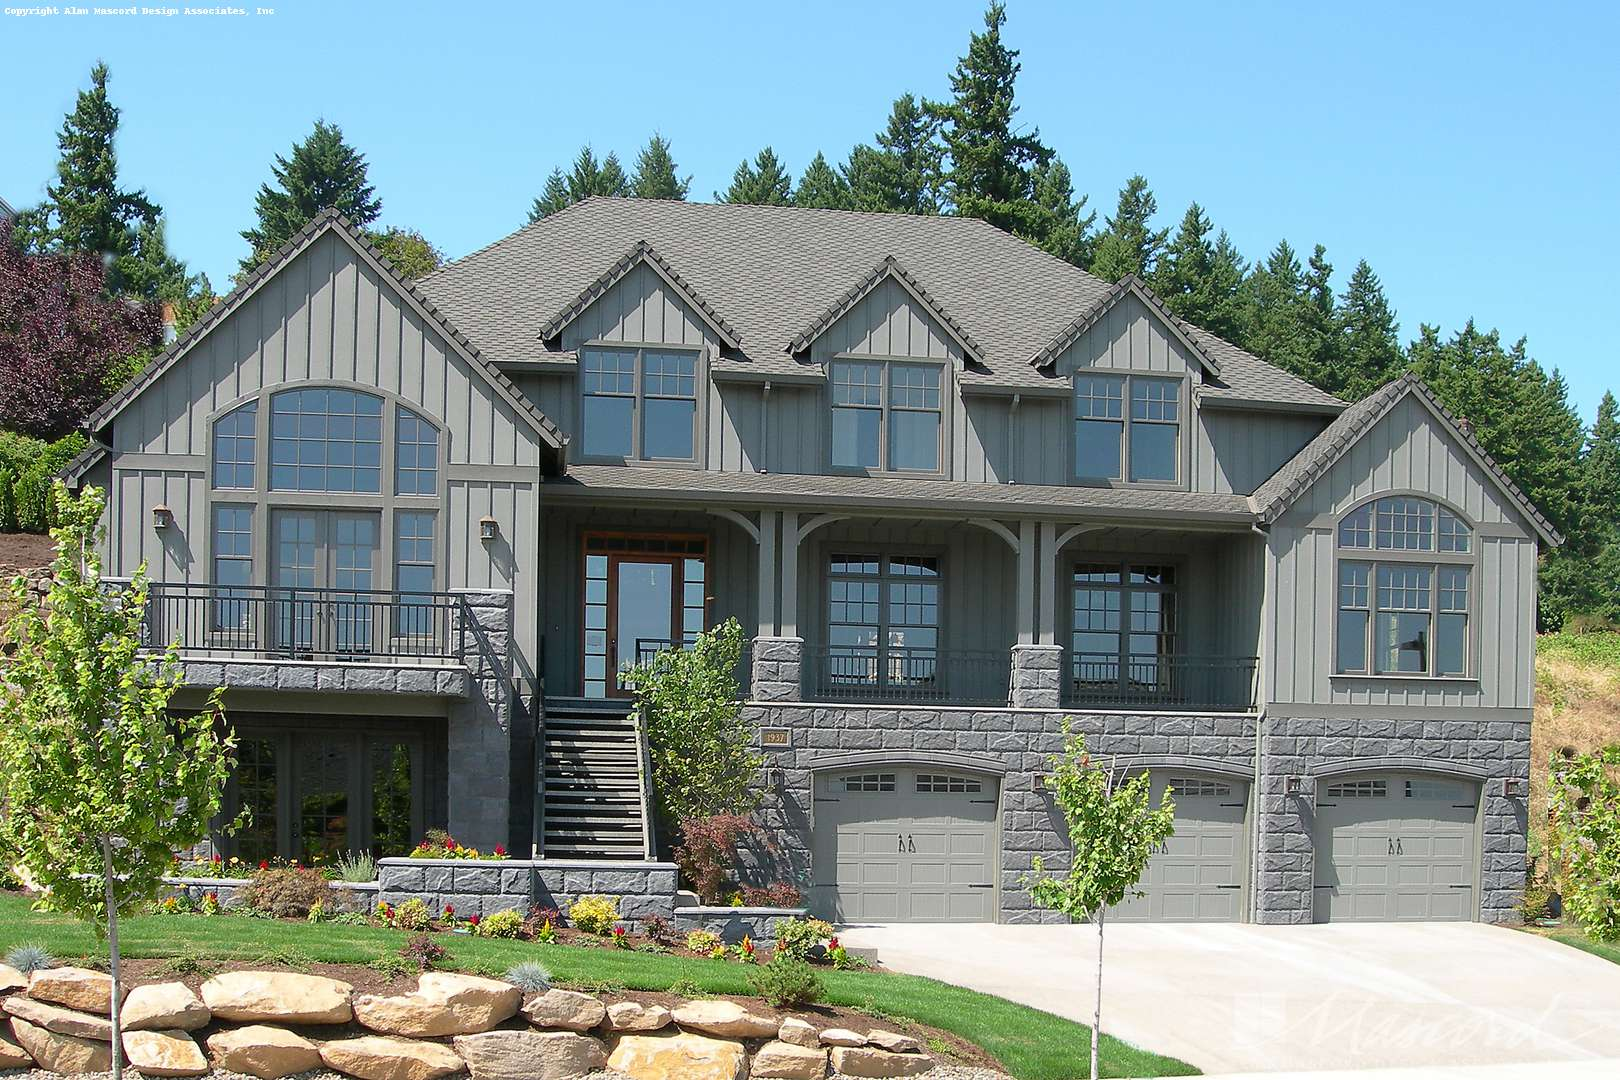 House Plans And More On Pinterest Logs Bath On House Wiring Layout Pdf